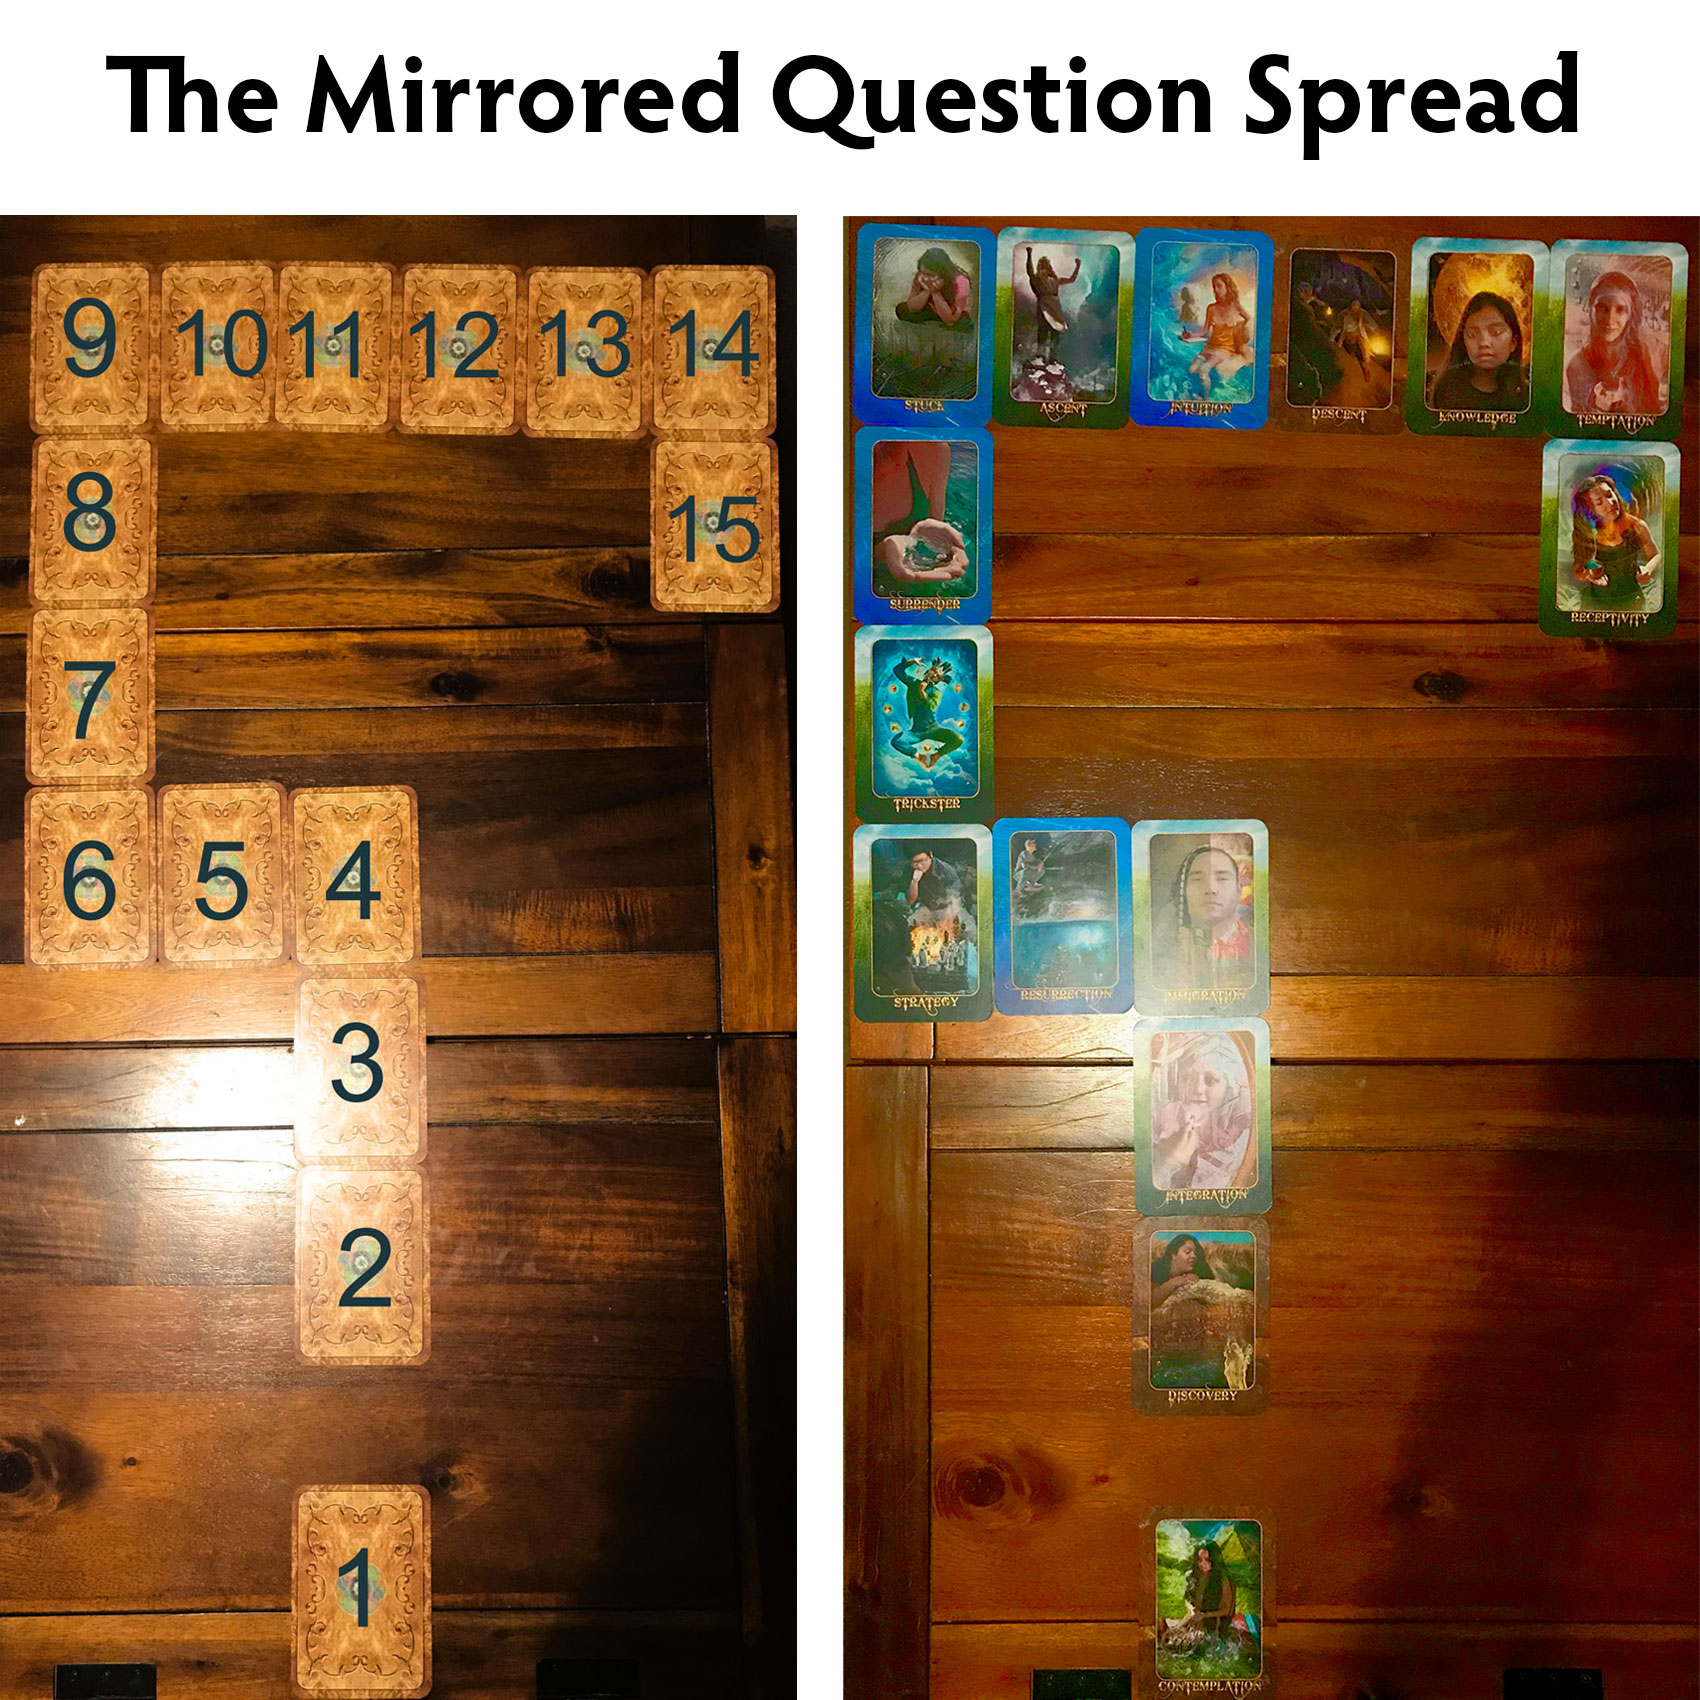 Mirrored Question Spread by Adryanna Kenna Sadge